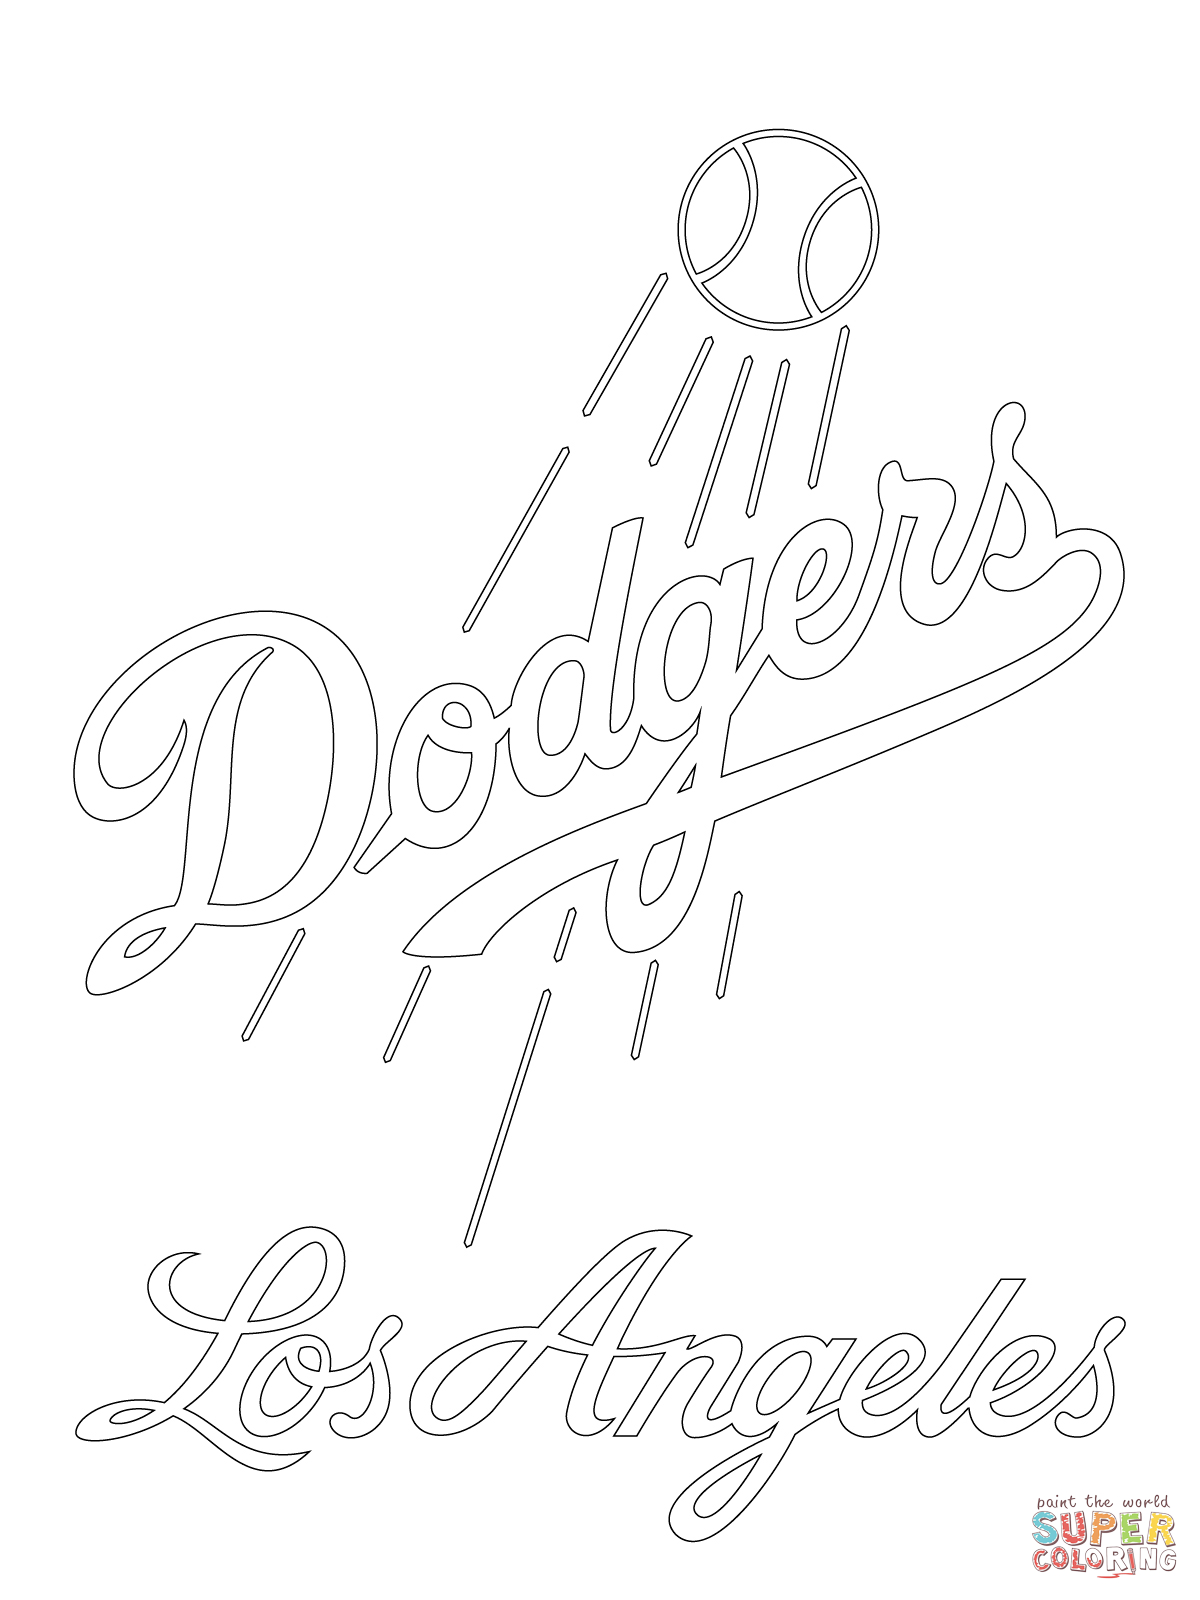 Los Angeles Dodgers Logo Coloring Page Free Printable Coloring